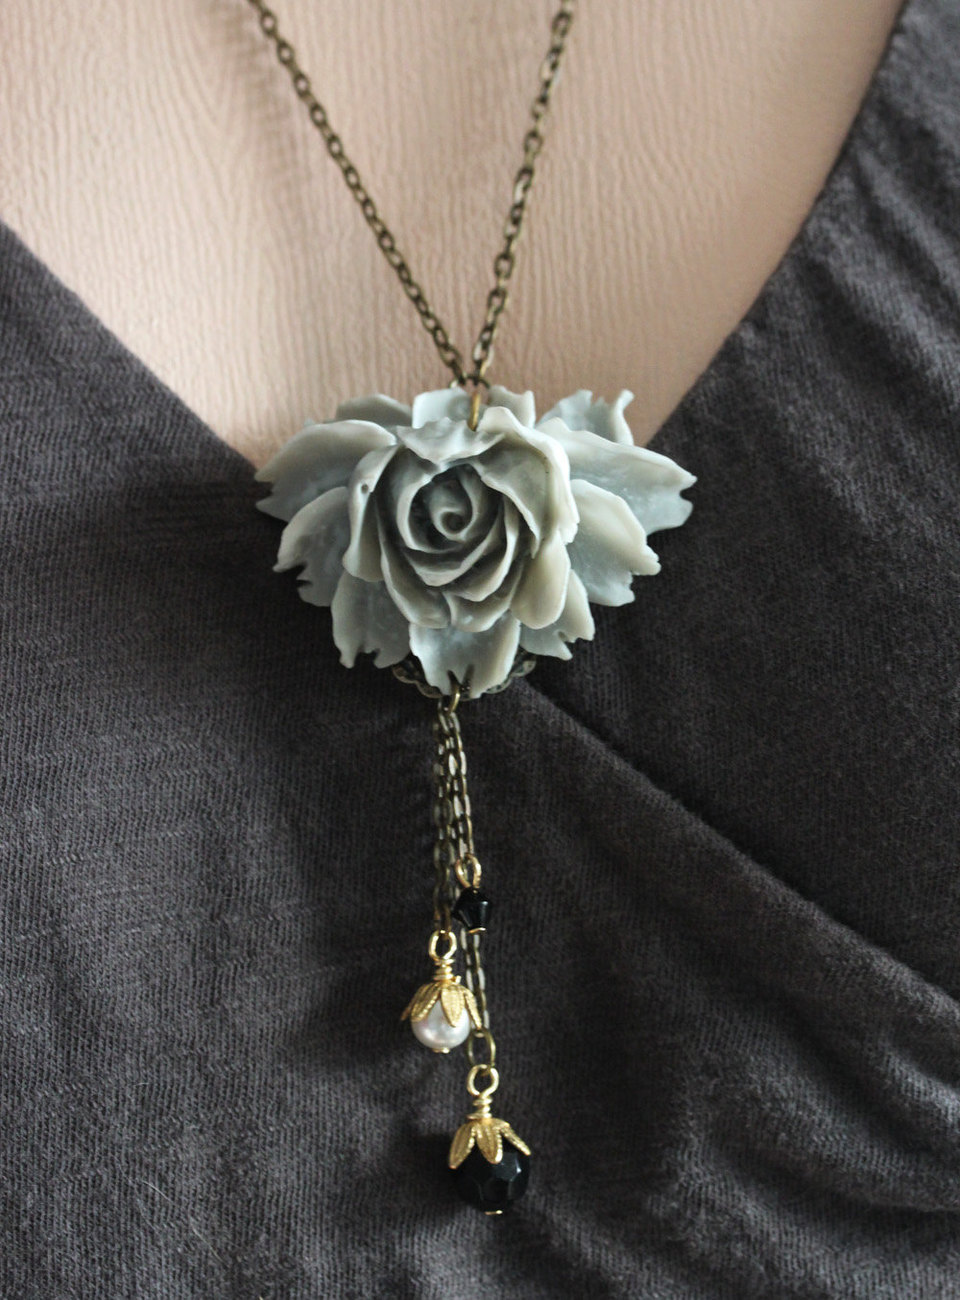 Gray Rose Necklace , Gray Necklace, Gray Flower Necklace, Vintage Flower Jewelry